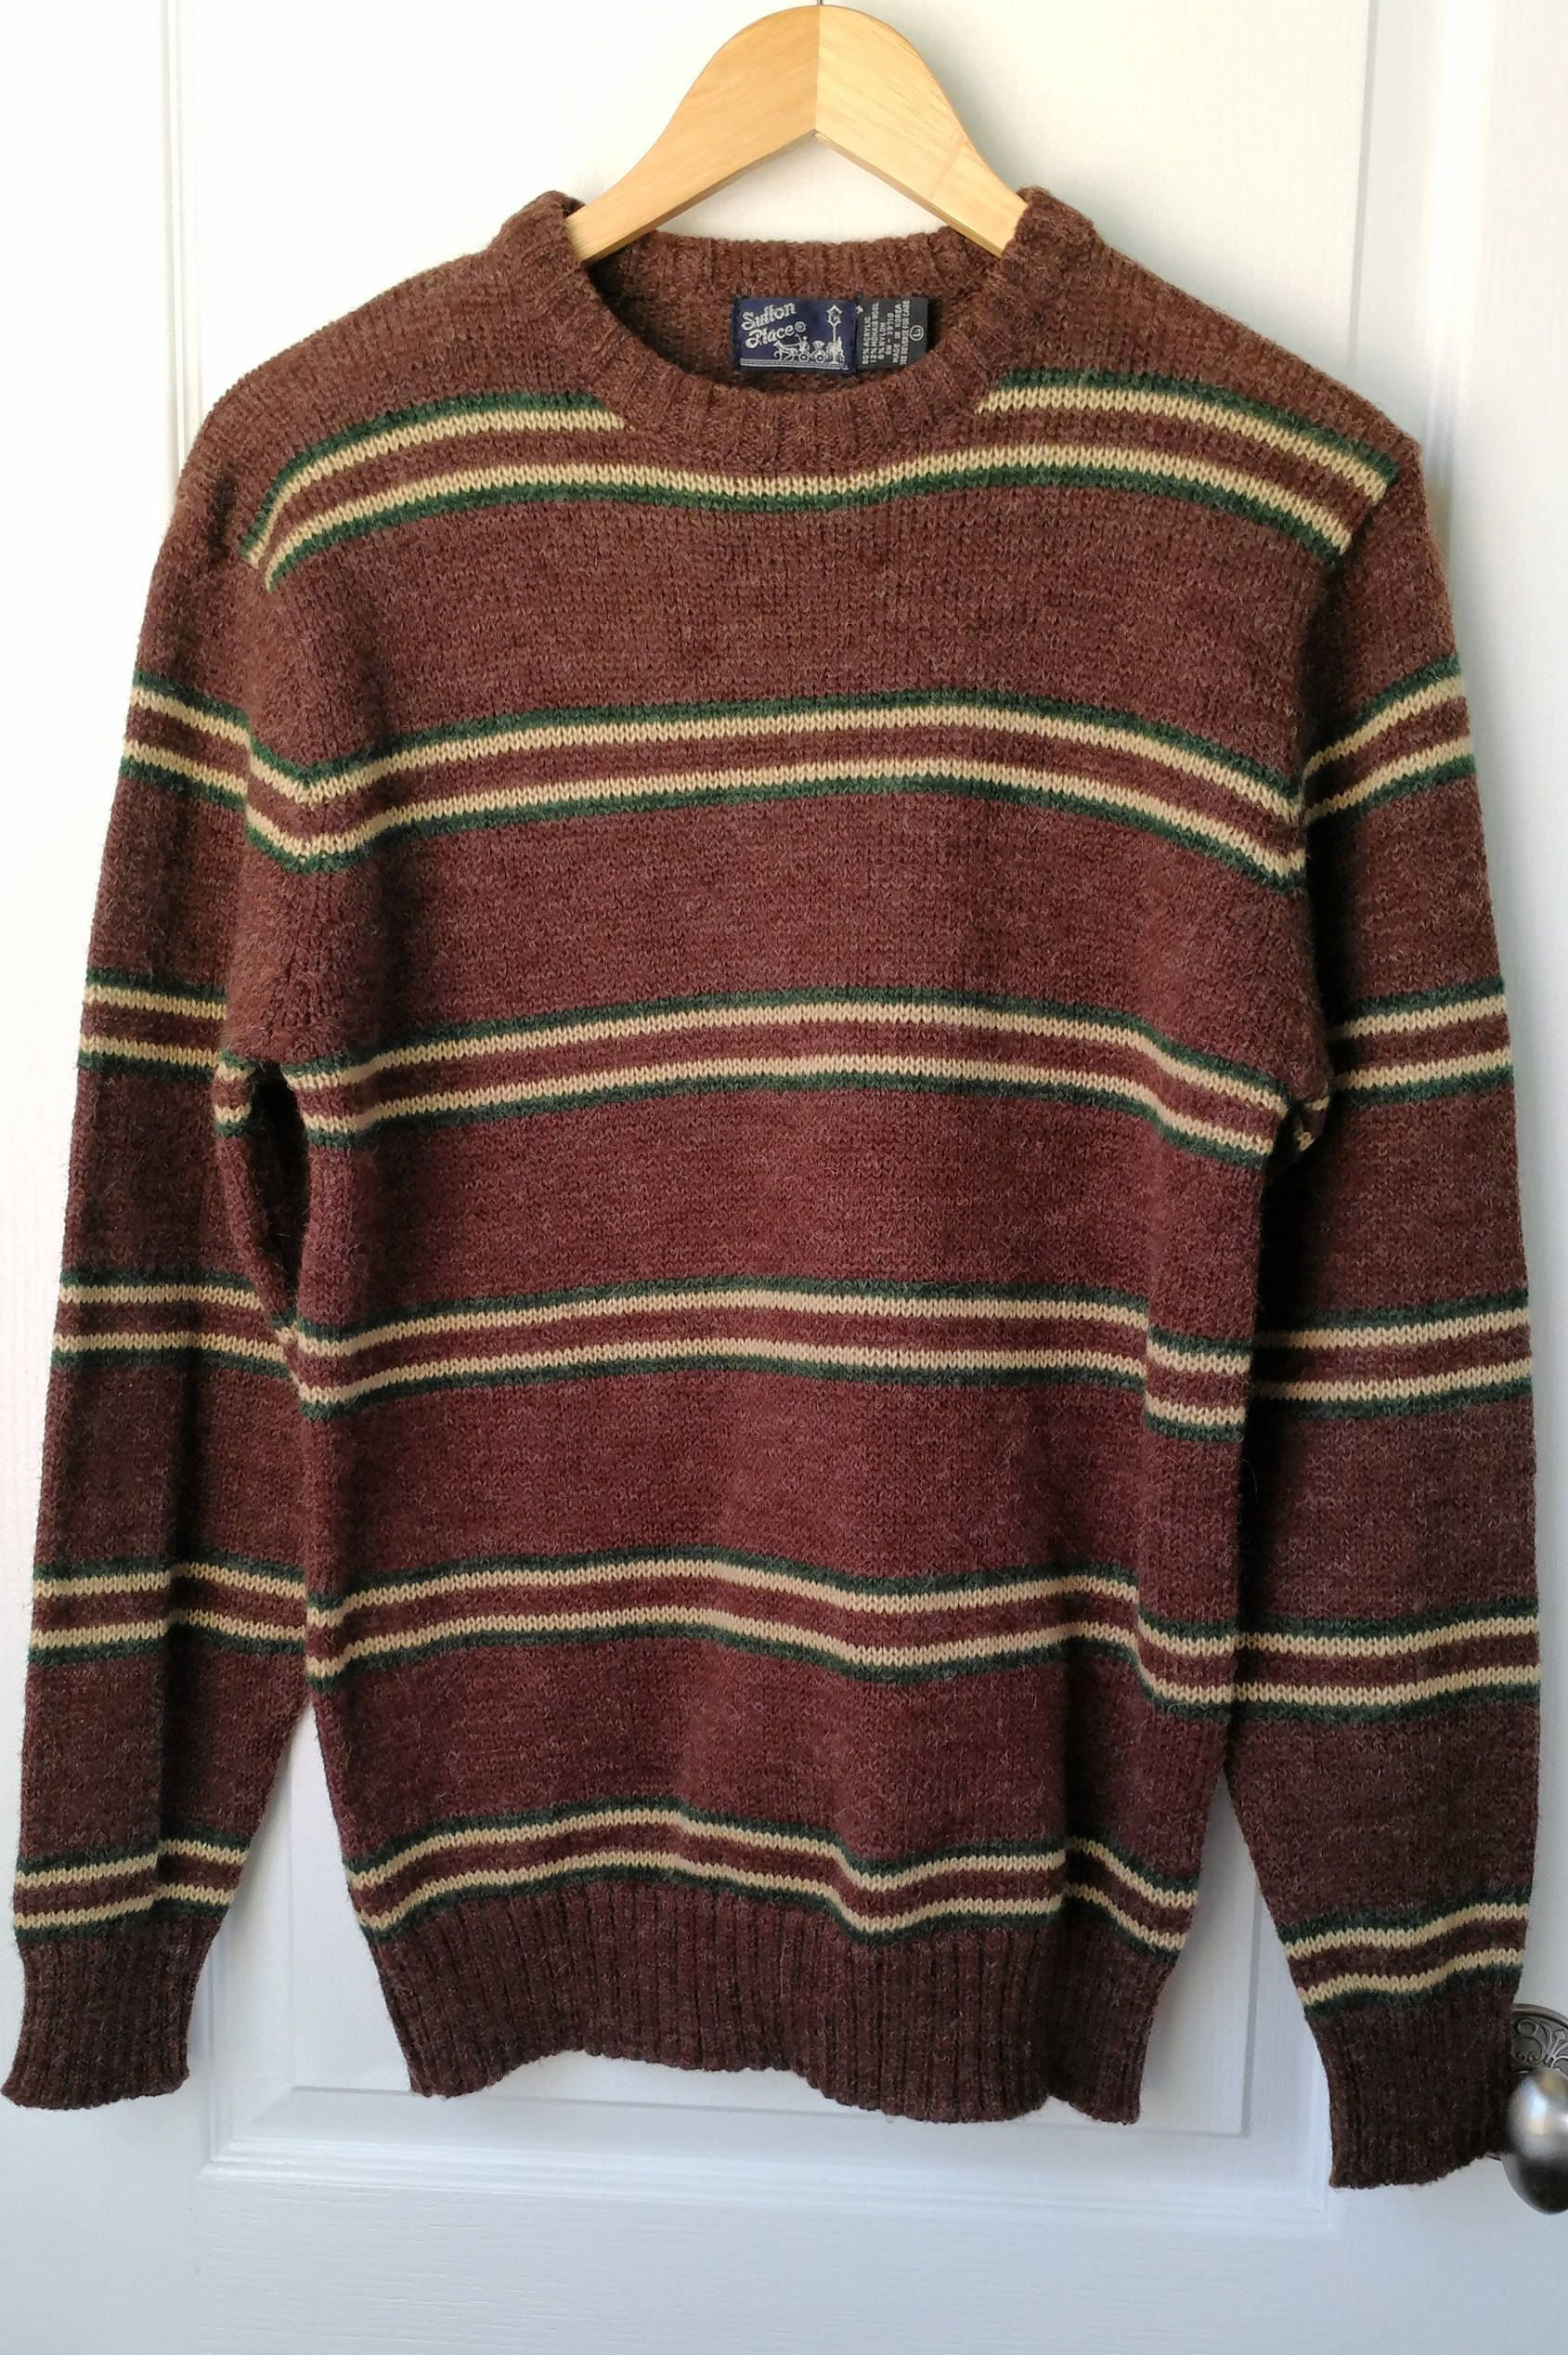 Mens Vintage Sweater Wool Blend Crewneck Pullover Sweater Size